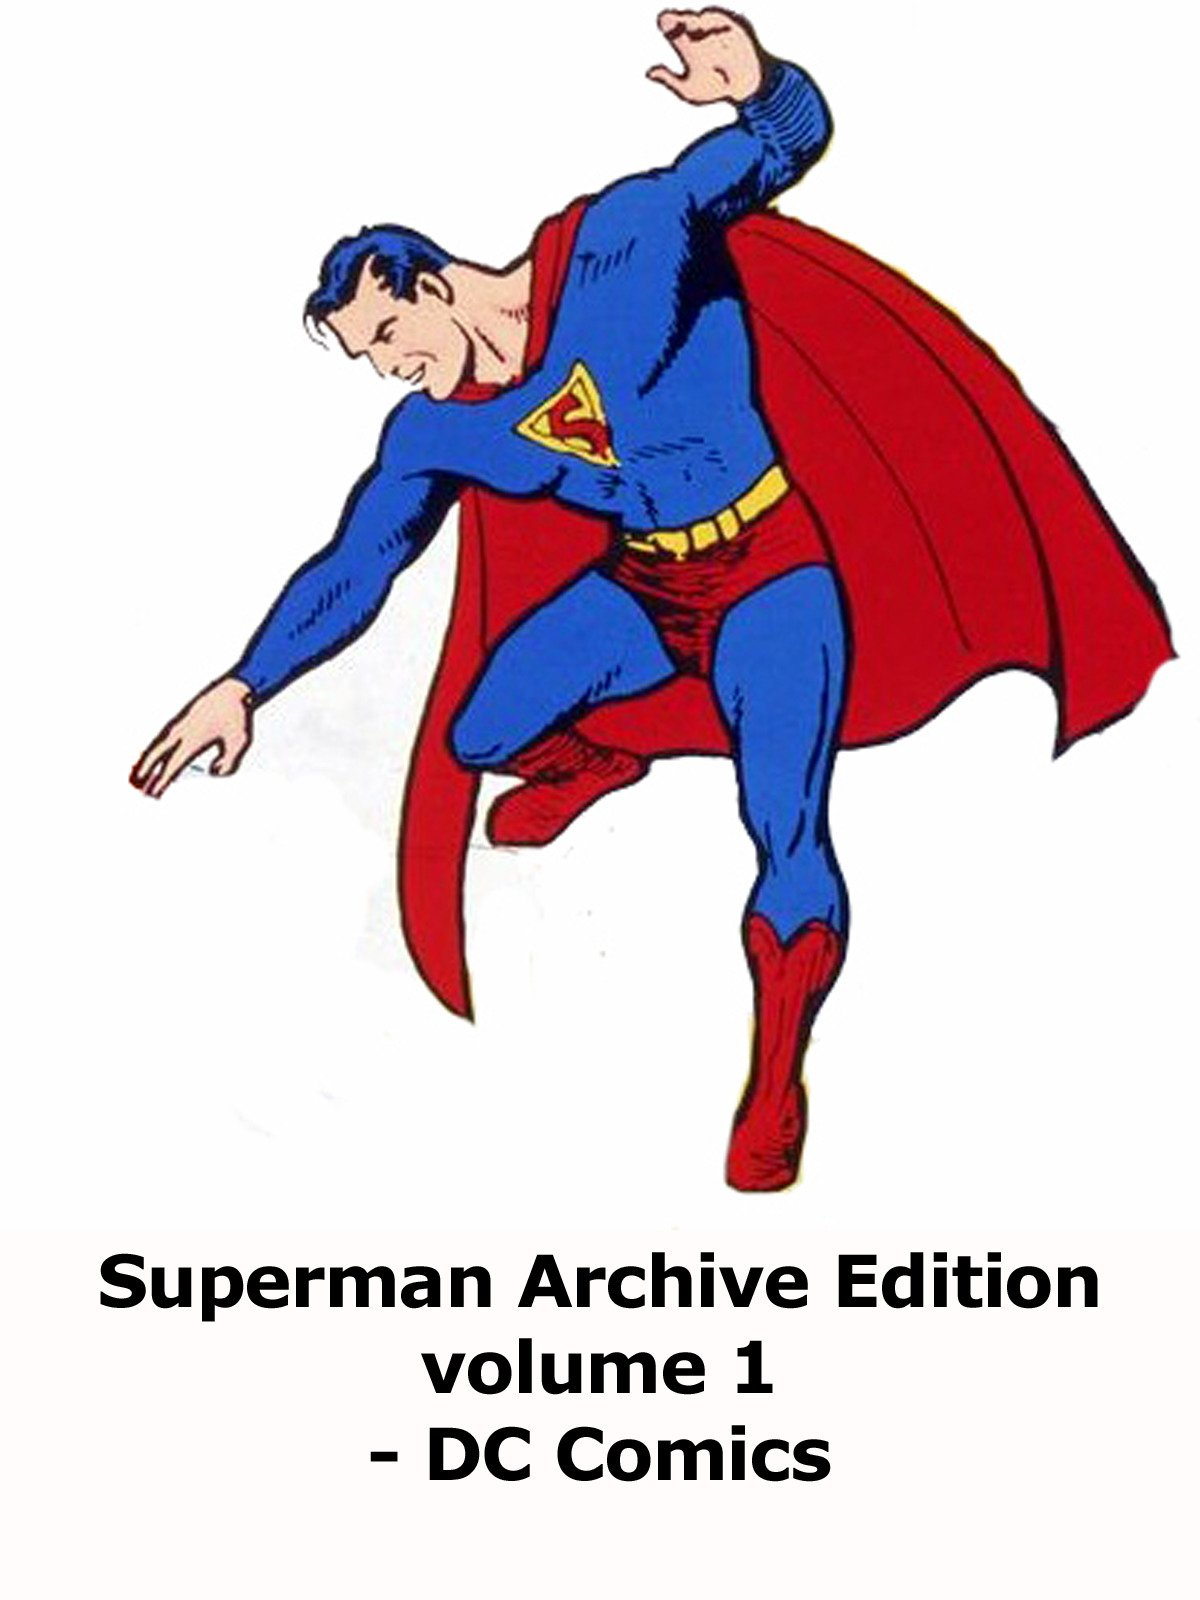 Review: Superman Archive Edition volume 1